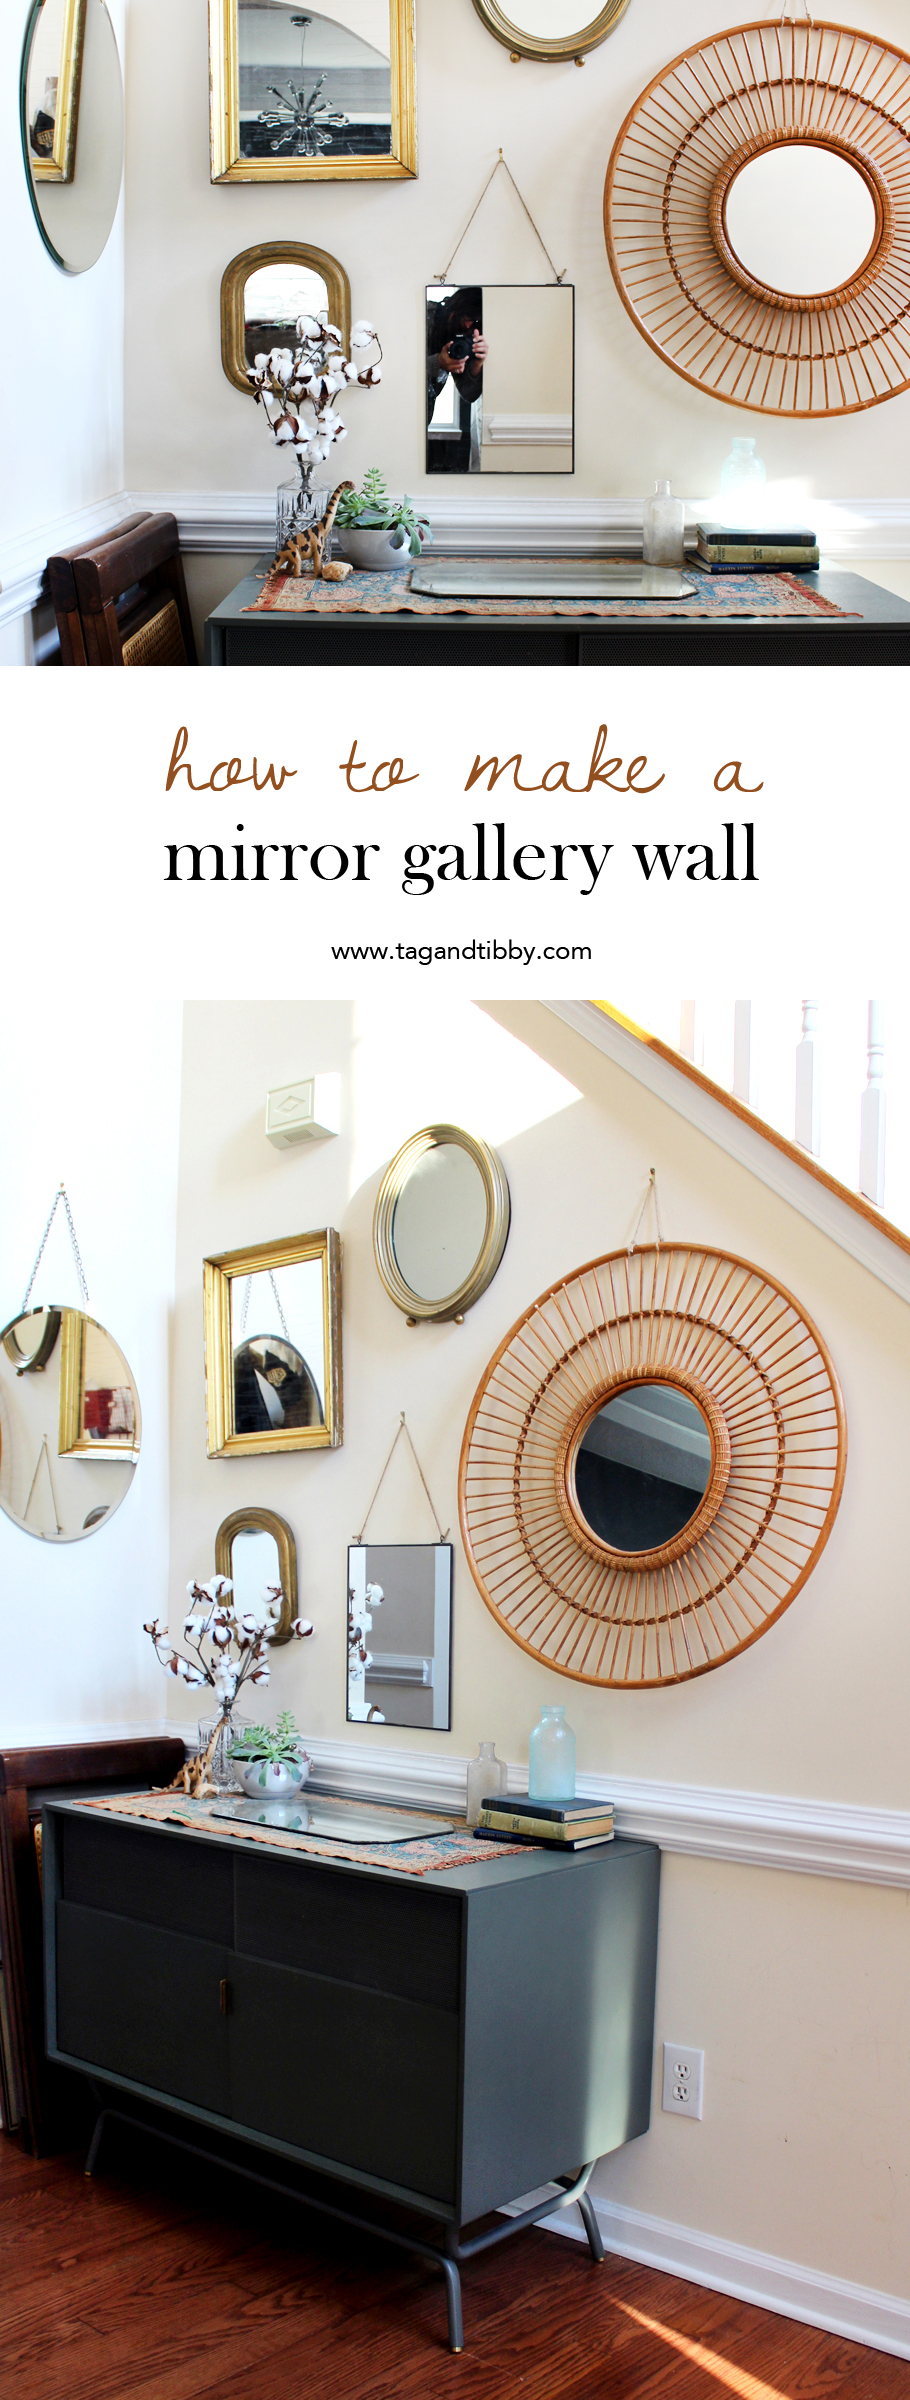 5 tips for designing your own mirror gallery wall | tag&tibby